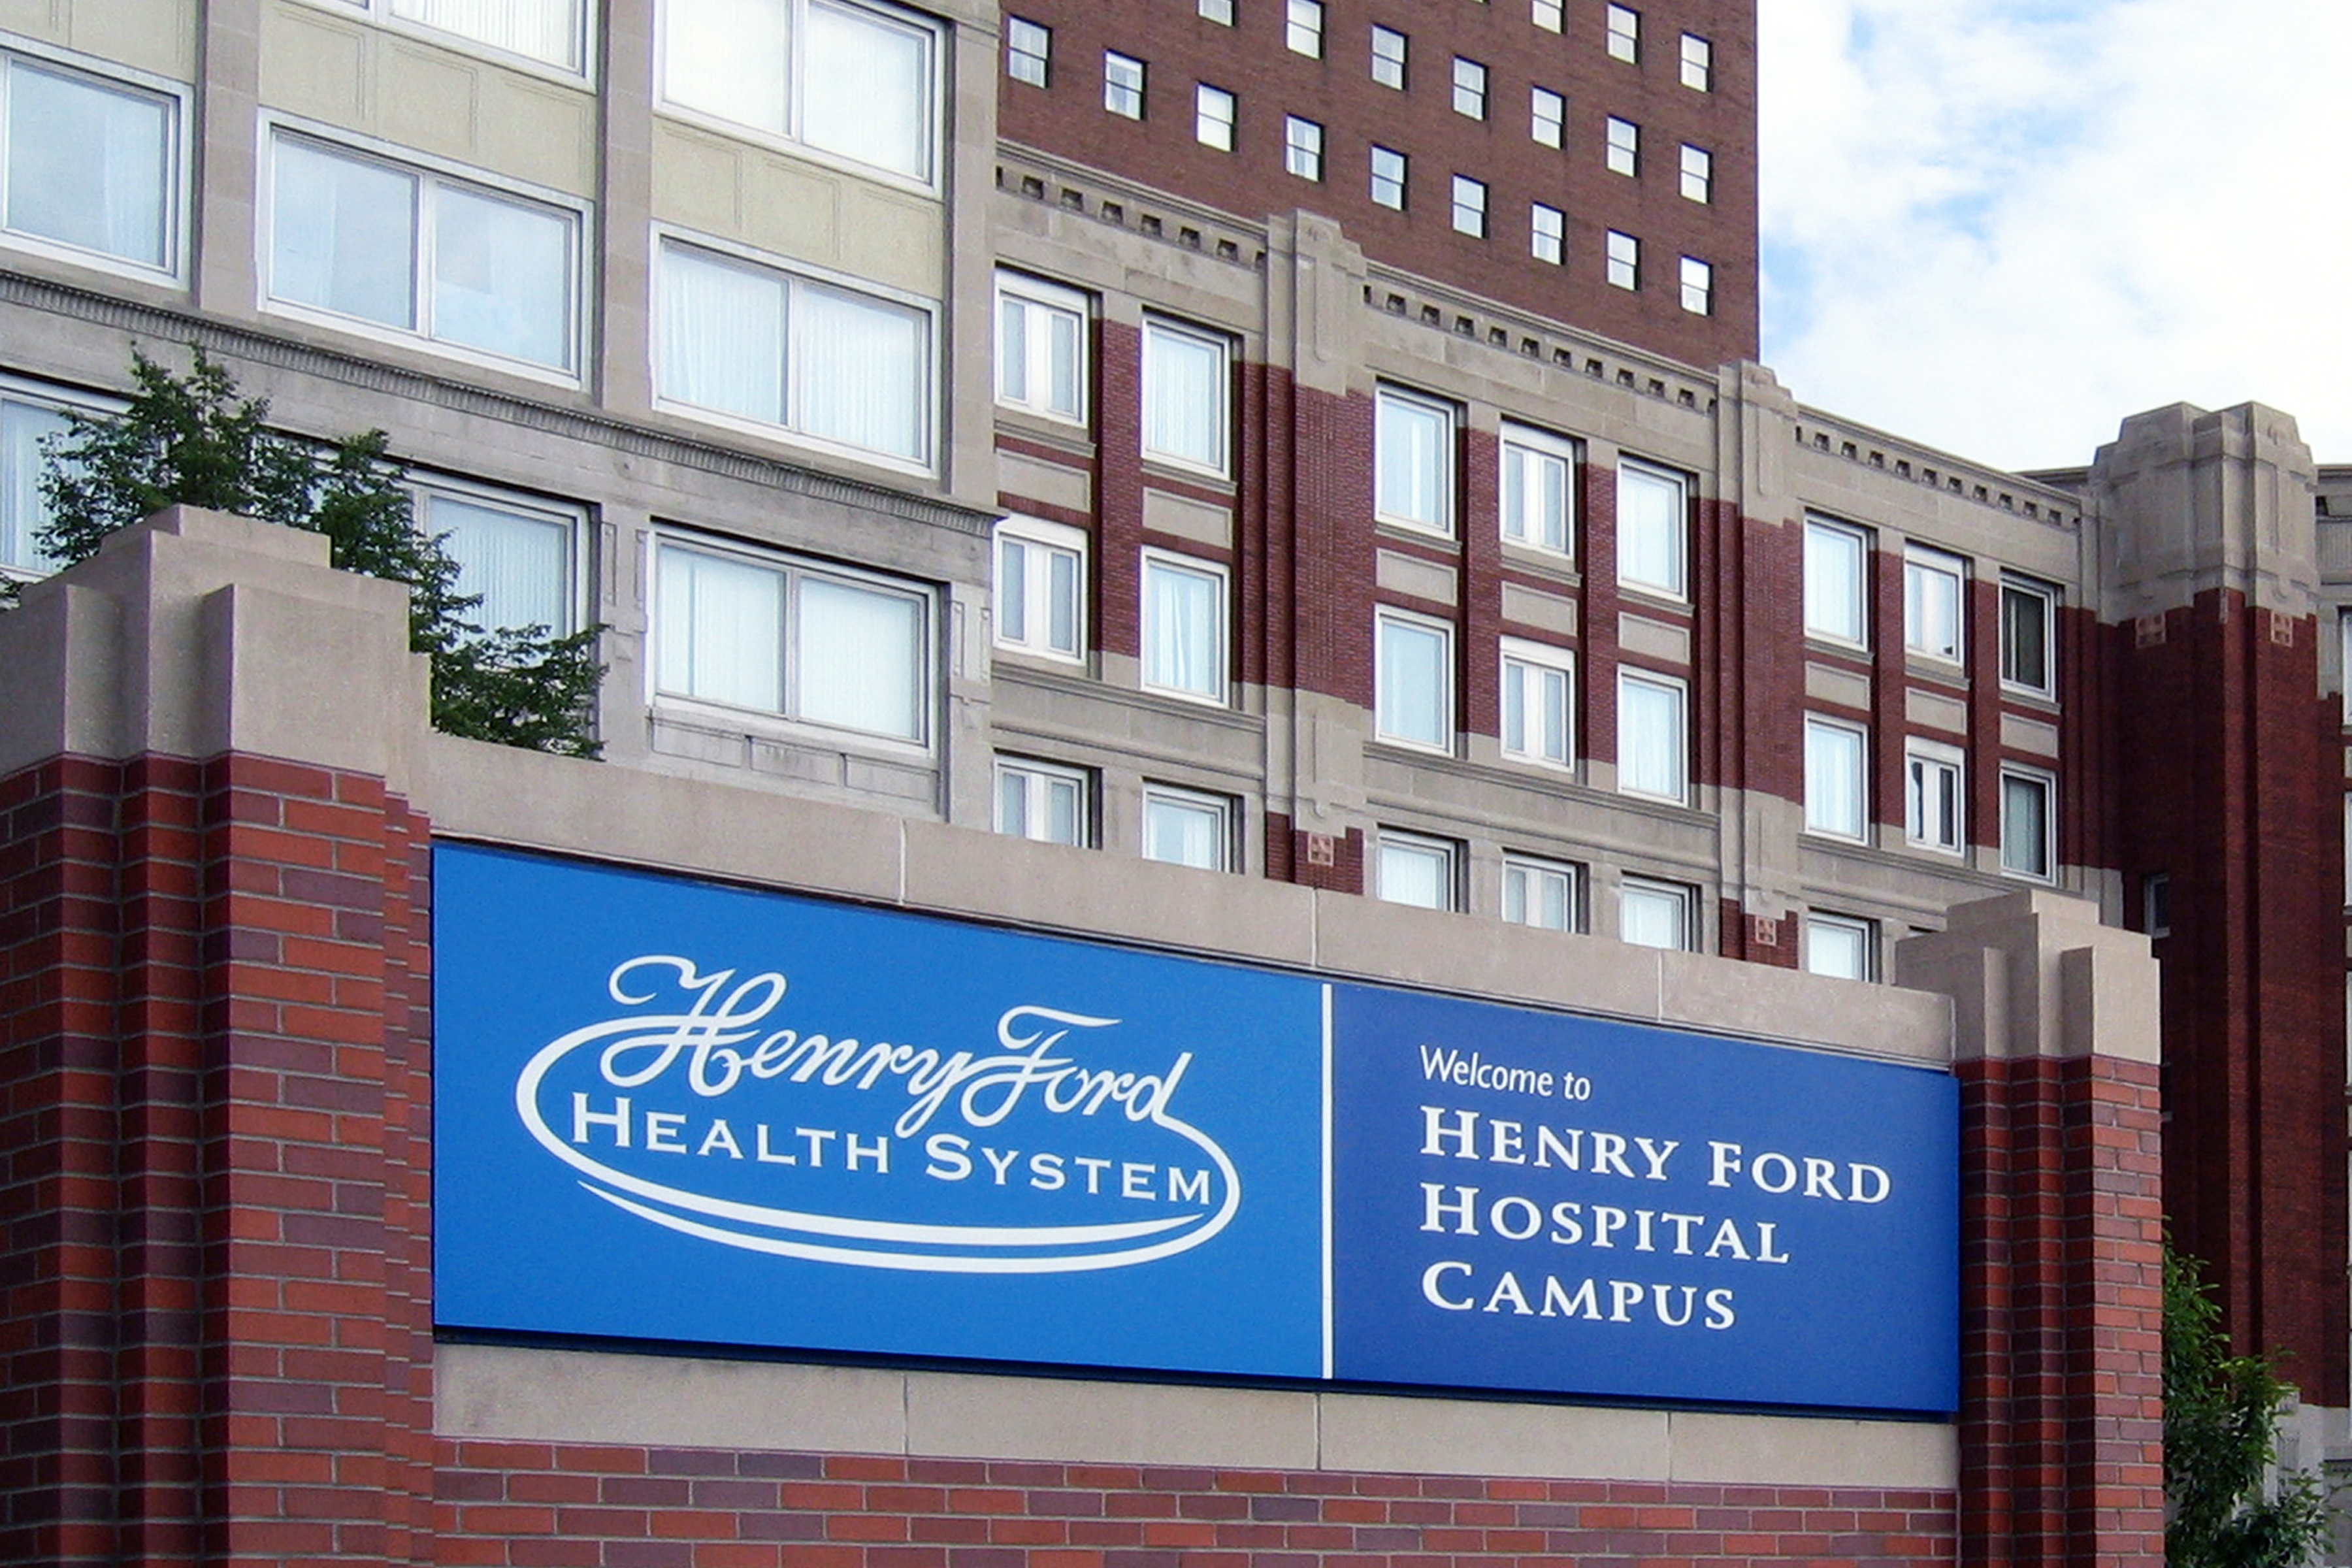 Community benefits negotiated for Henry Ford Cancer Pavilion